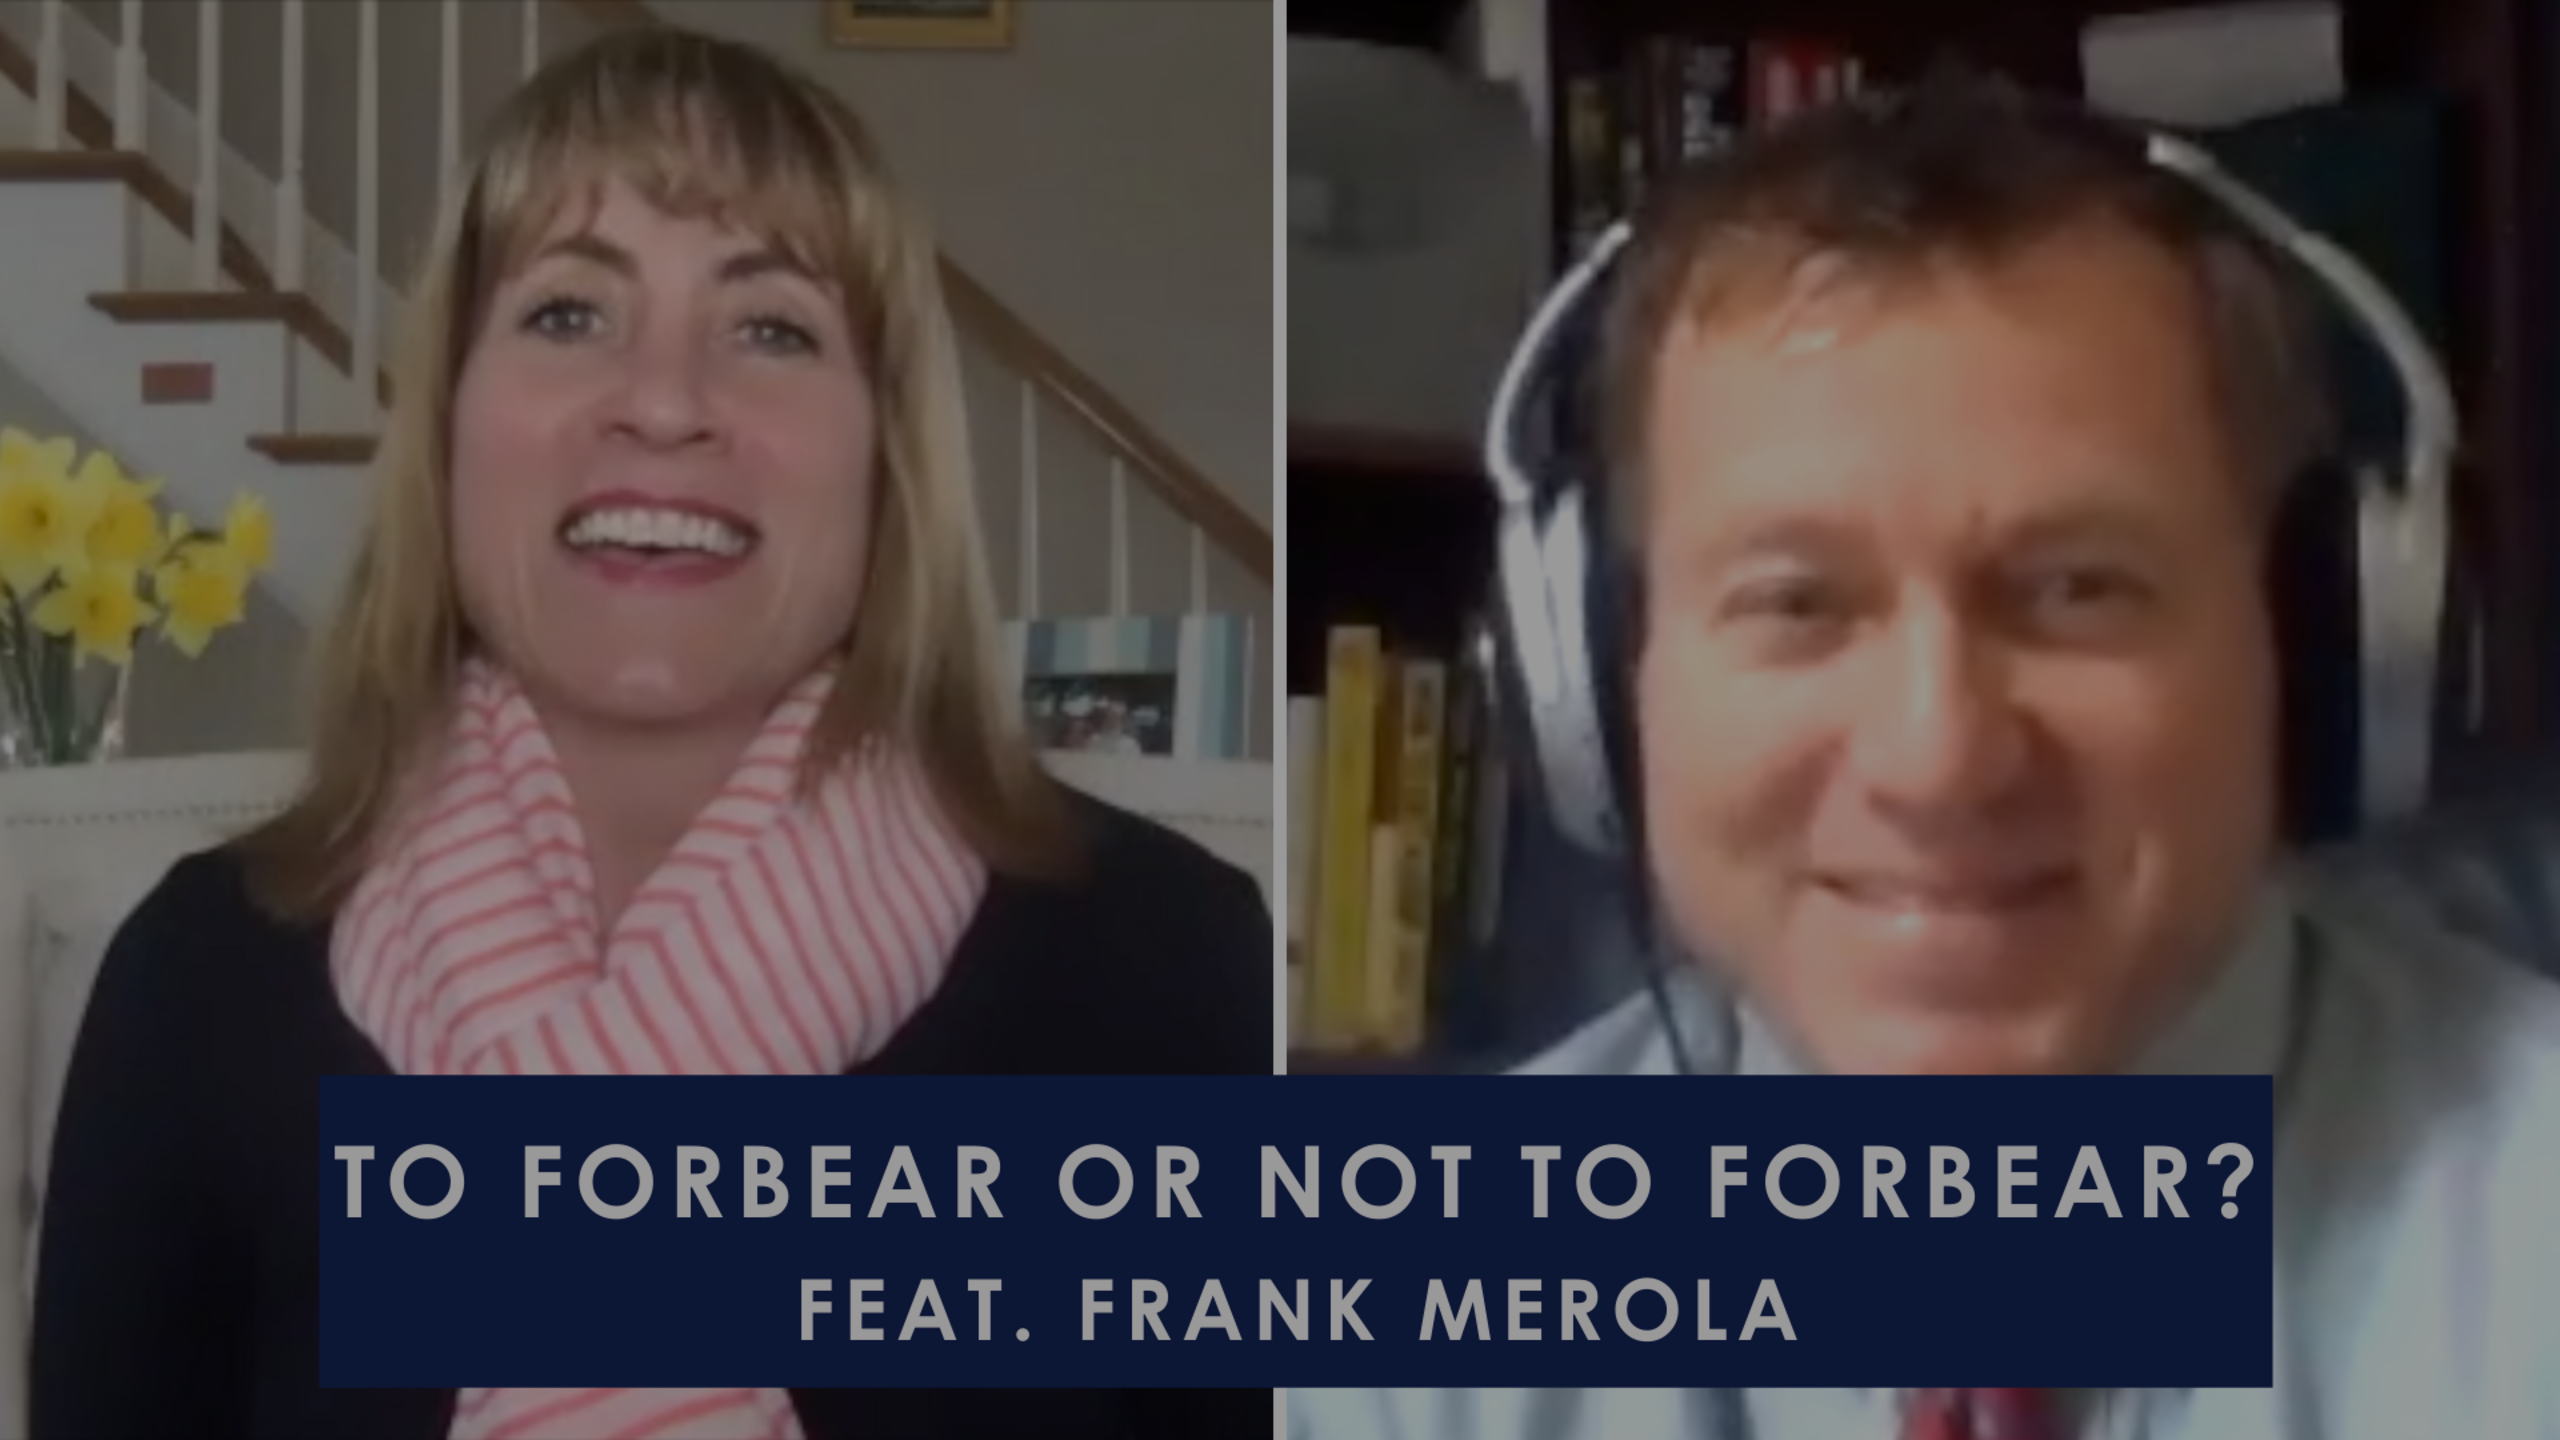 Episode 88: To Forbear or Not to Forbear During Coronavirus